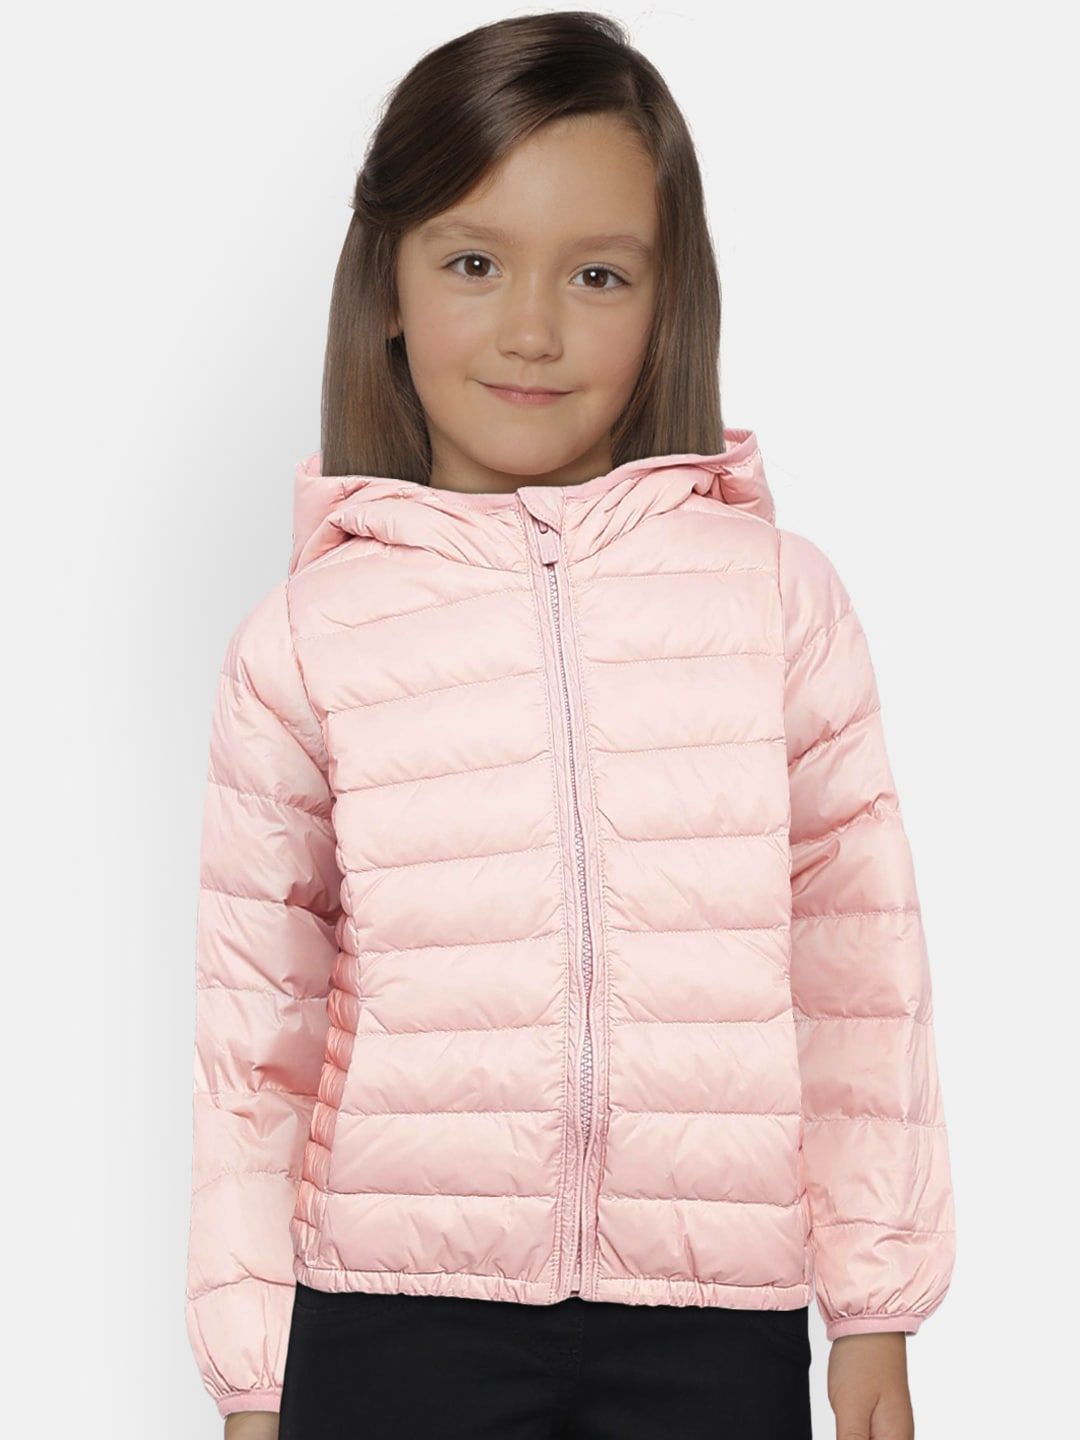 Jackets for Girls - Buy Jacket for Girls online in India  c93b280f2